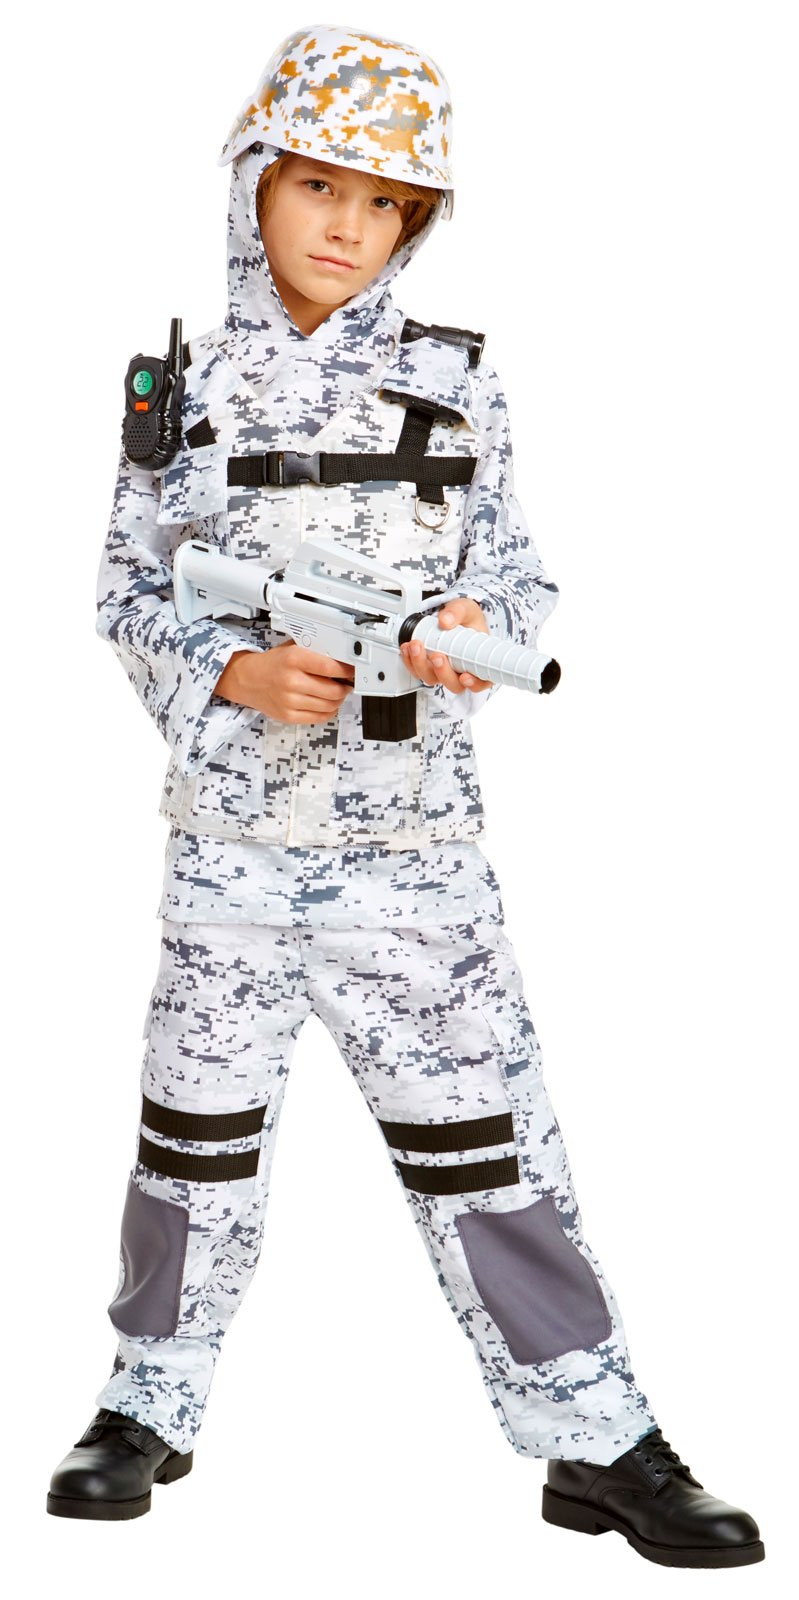 Winter Camo Stealth Soldier Child Costume by Palamon